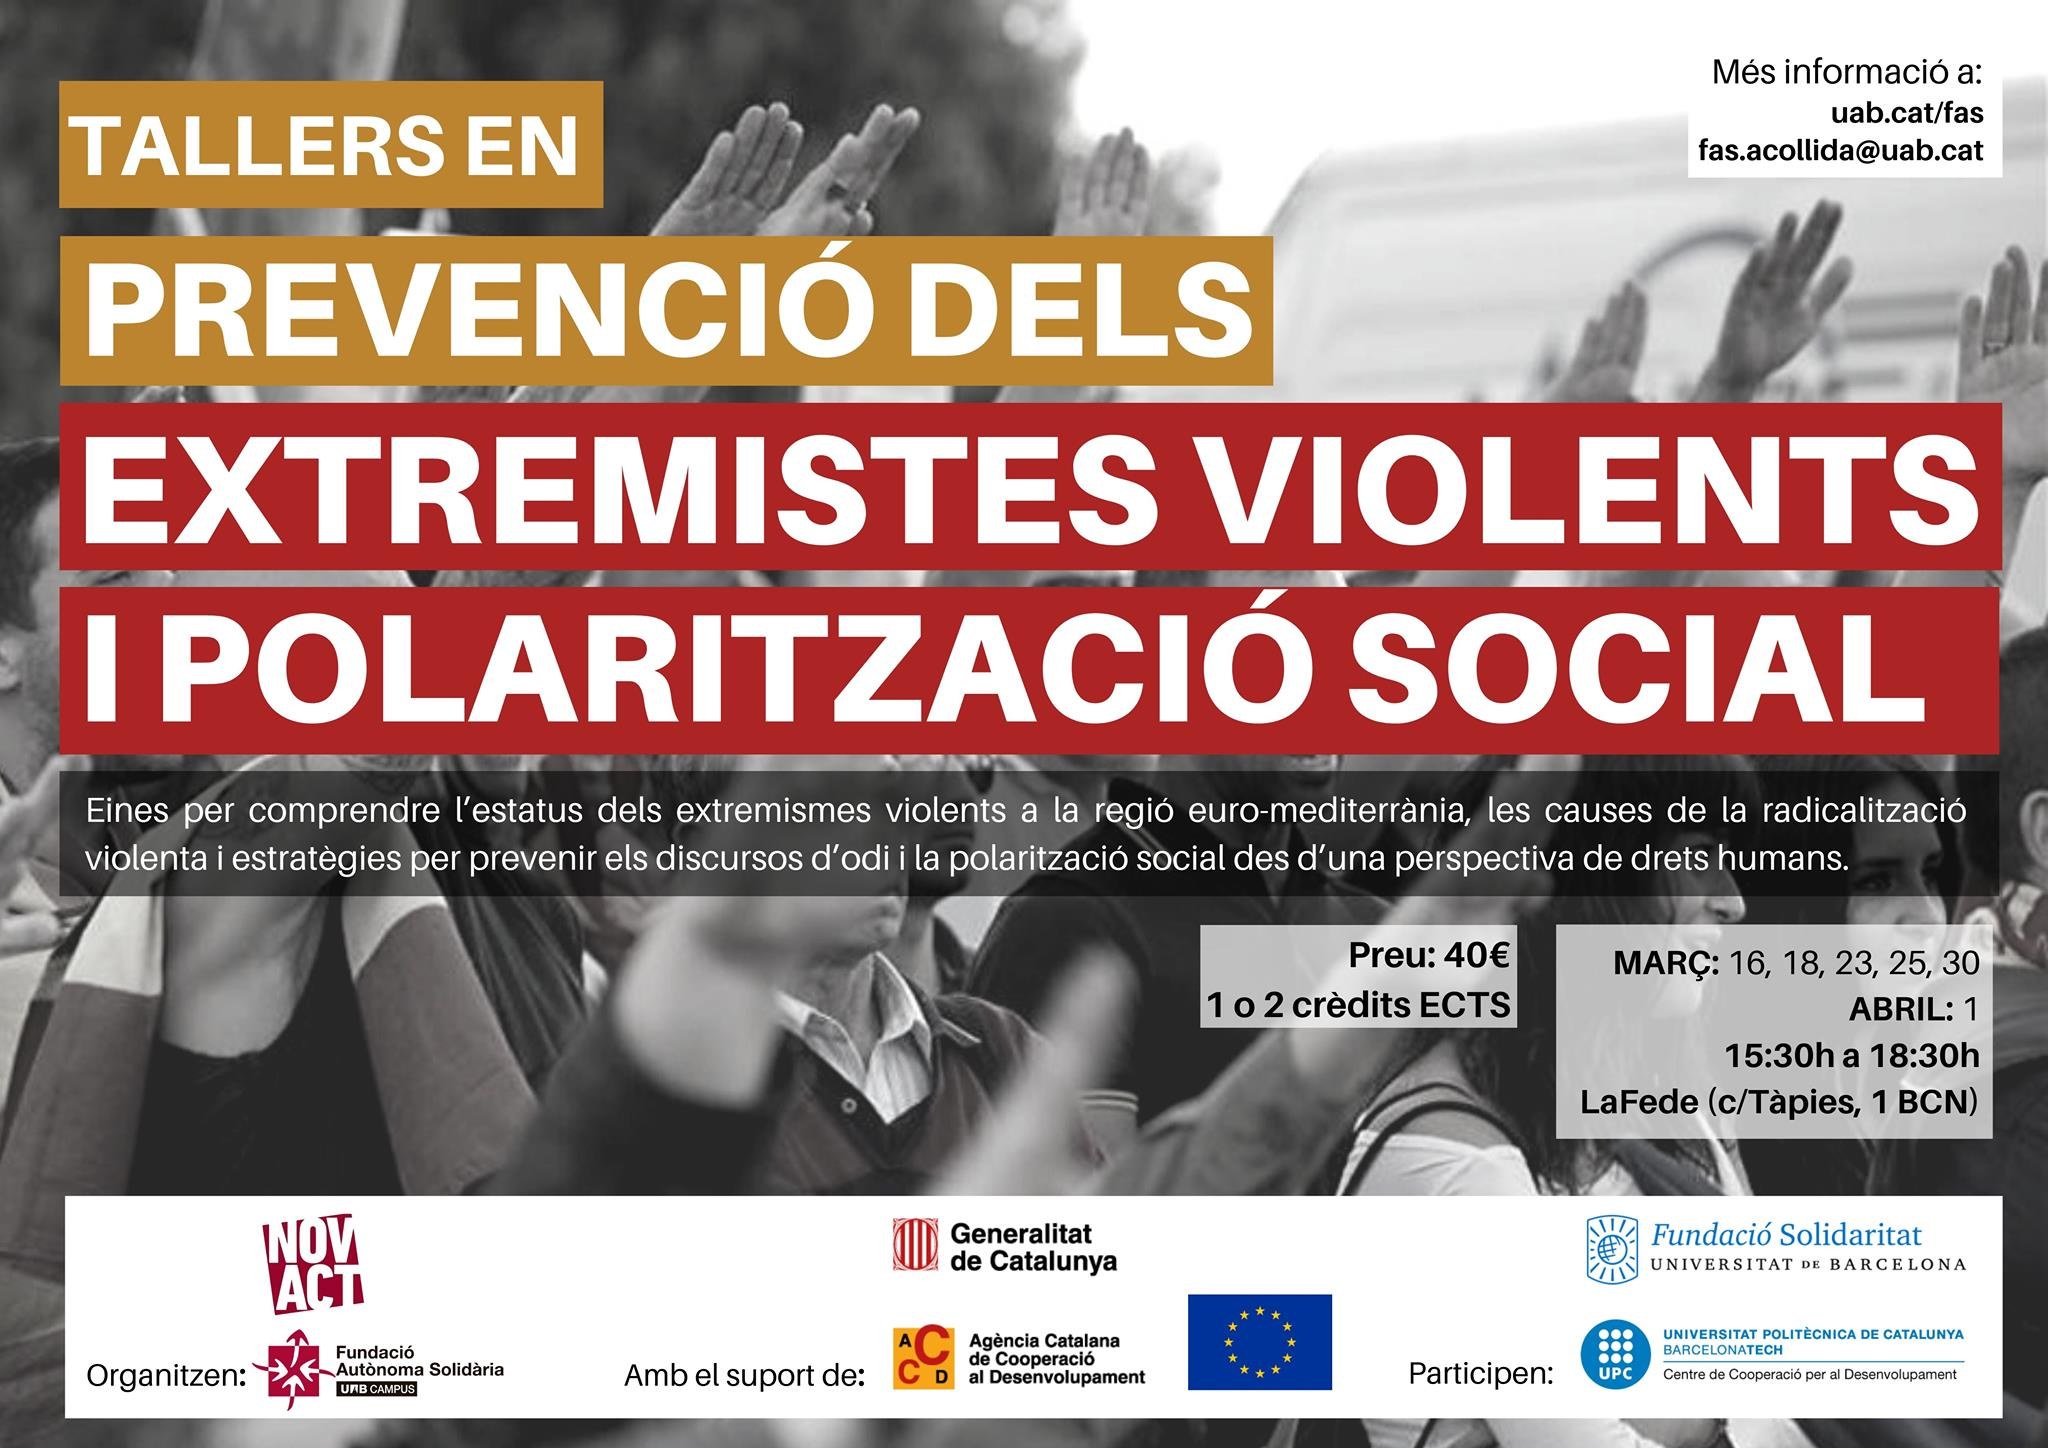 Training: Inter-unviersity course on prevention of violent extremism and social polarization